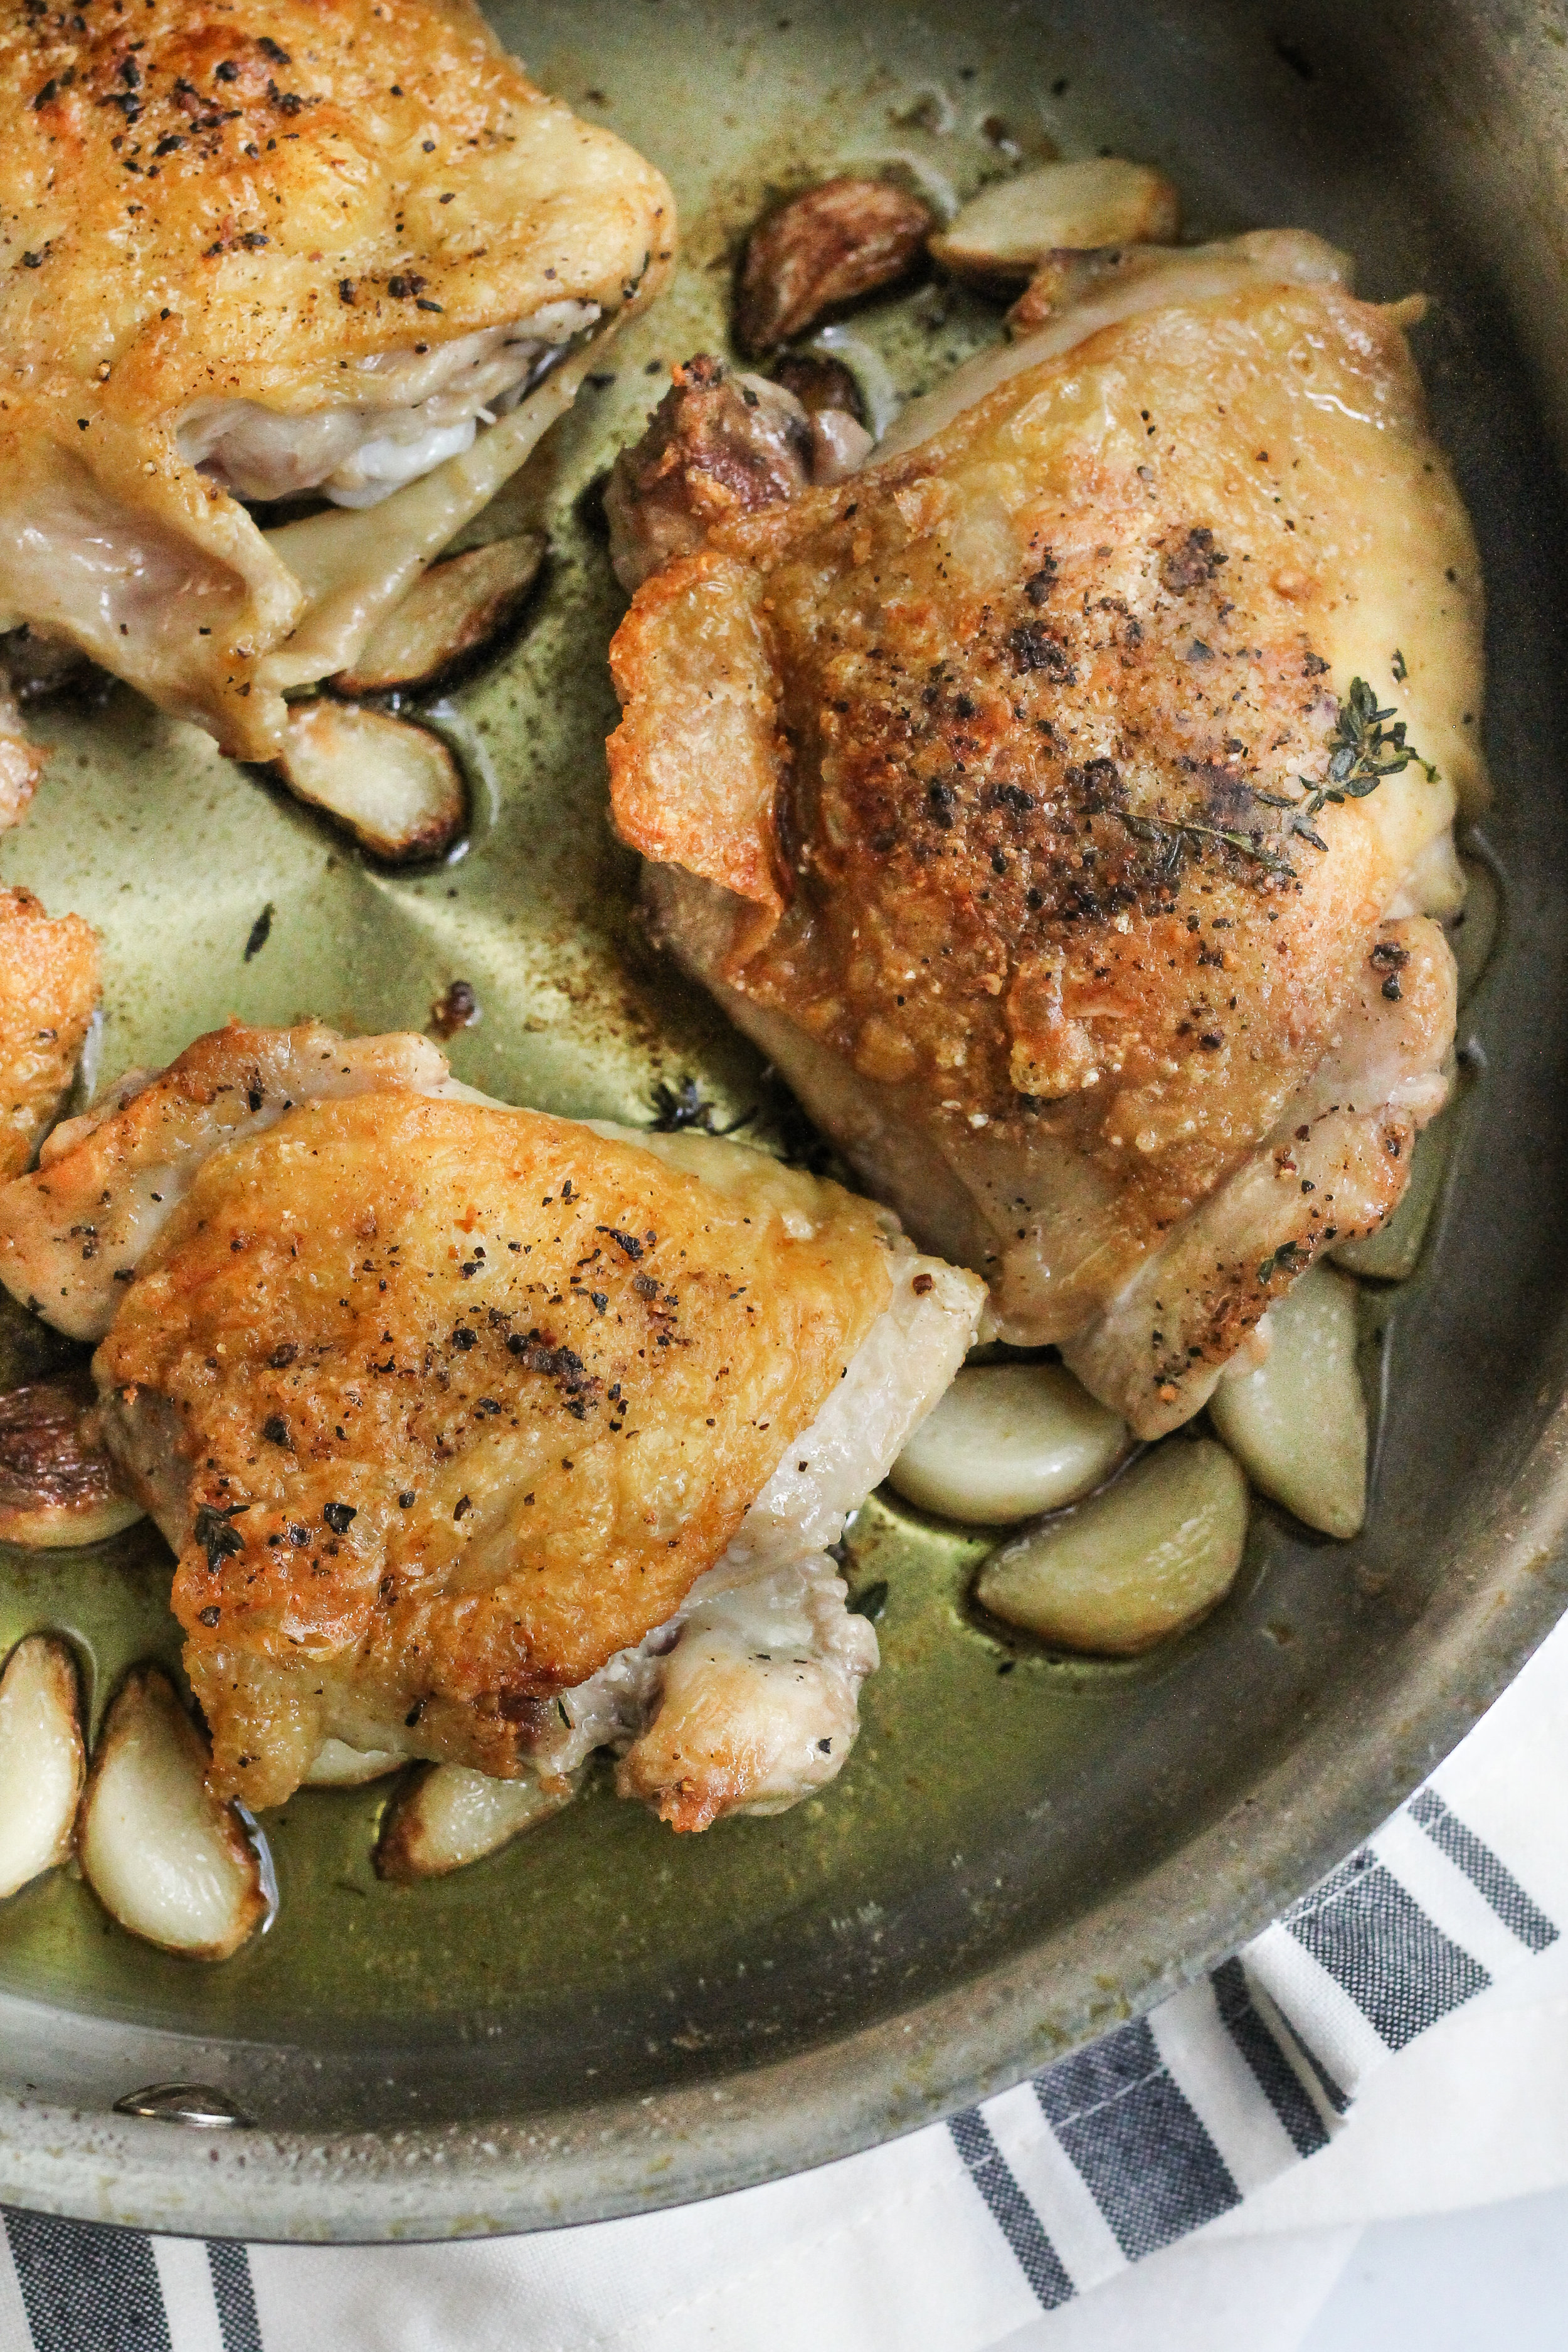 Crispy Garlic Chicken Thighs with Pan Gravy are the perfect weeknight meal for these cool, autumn nights.  [ www.pedanticfoodie.com ]